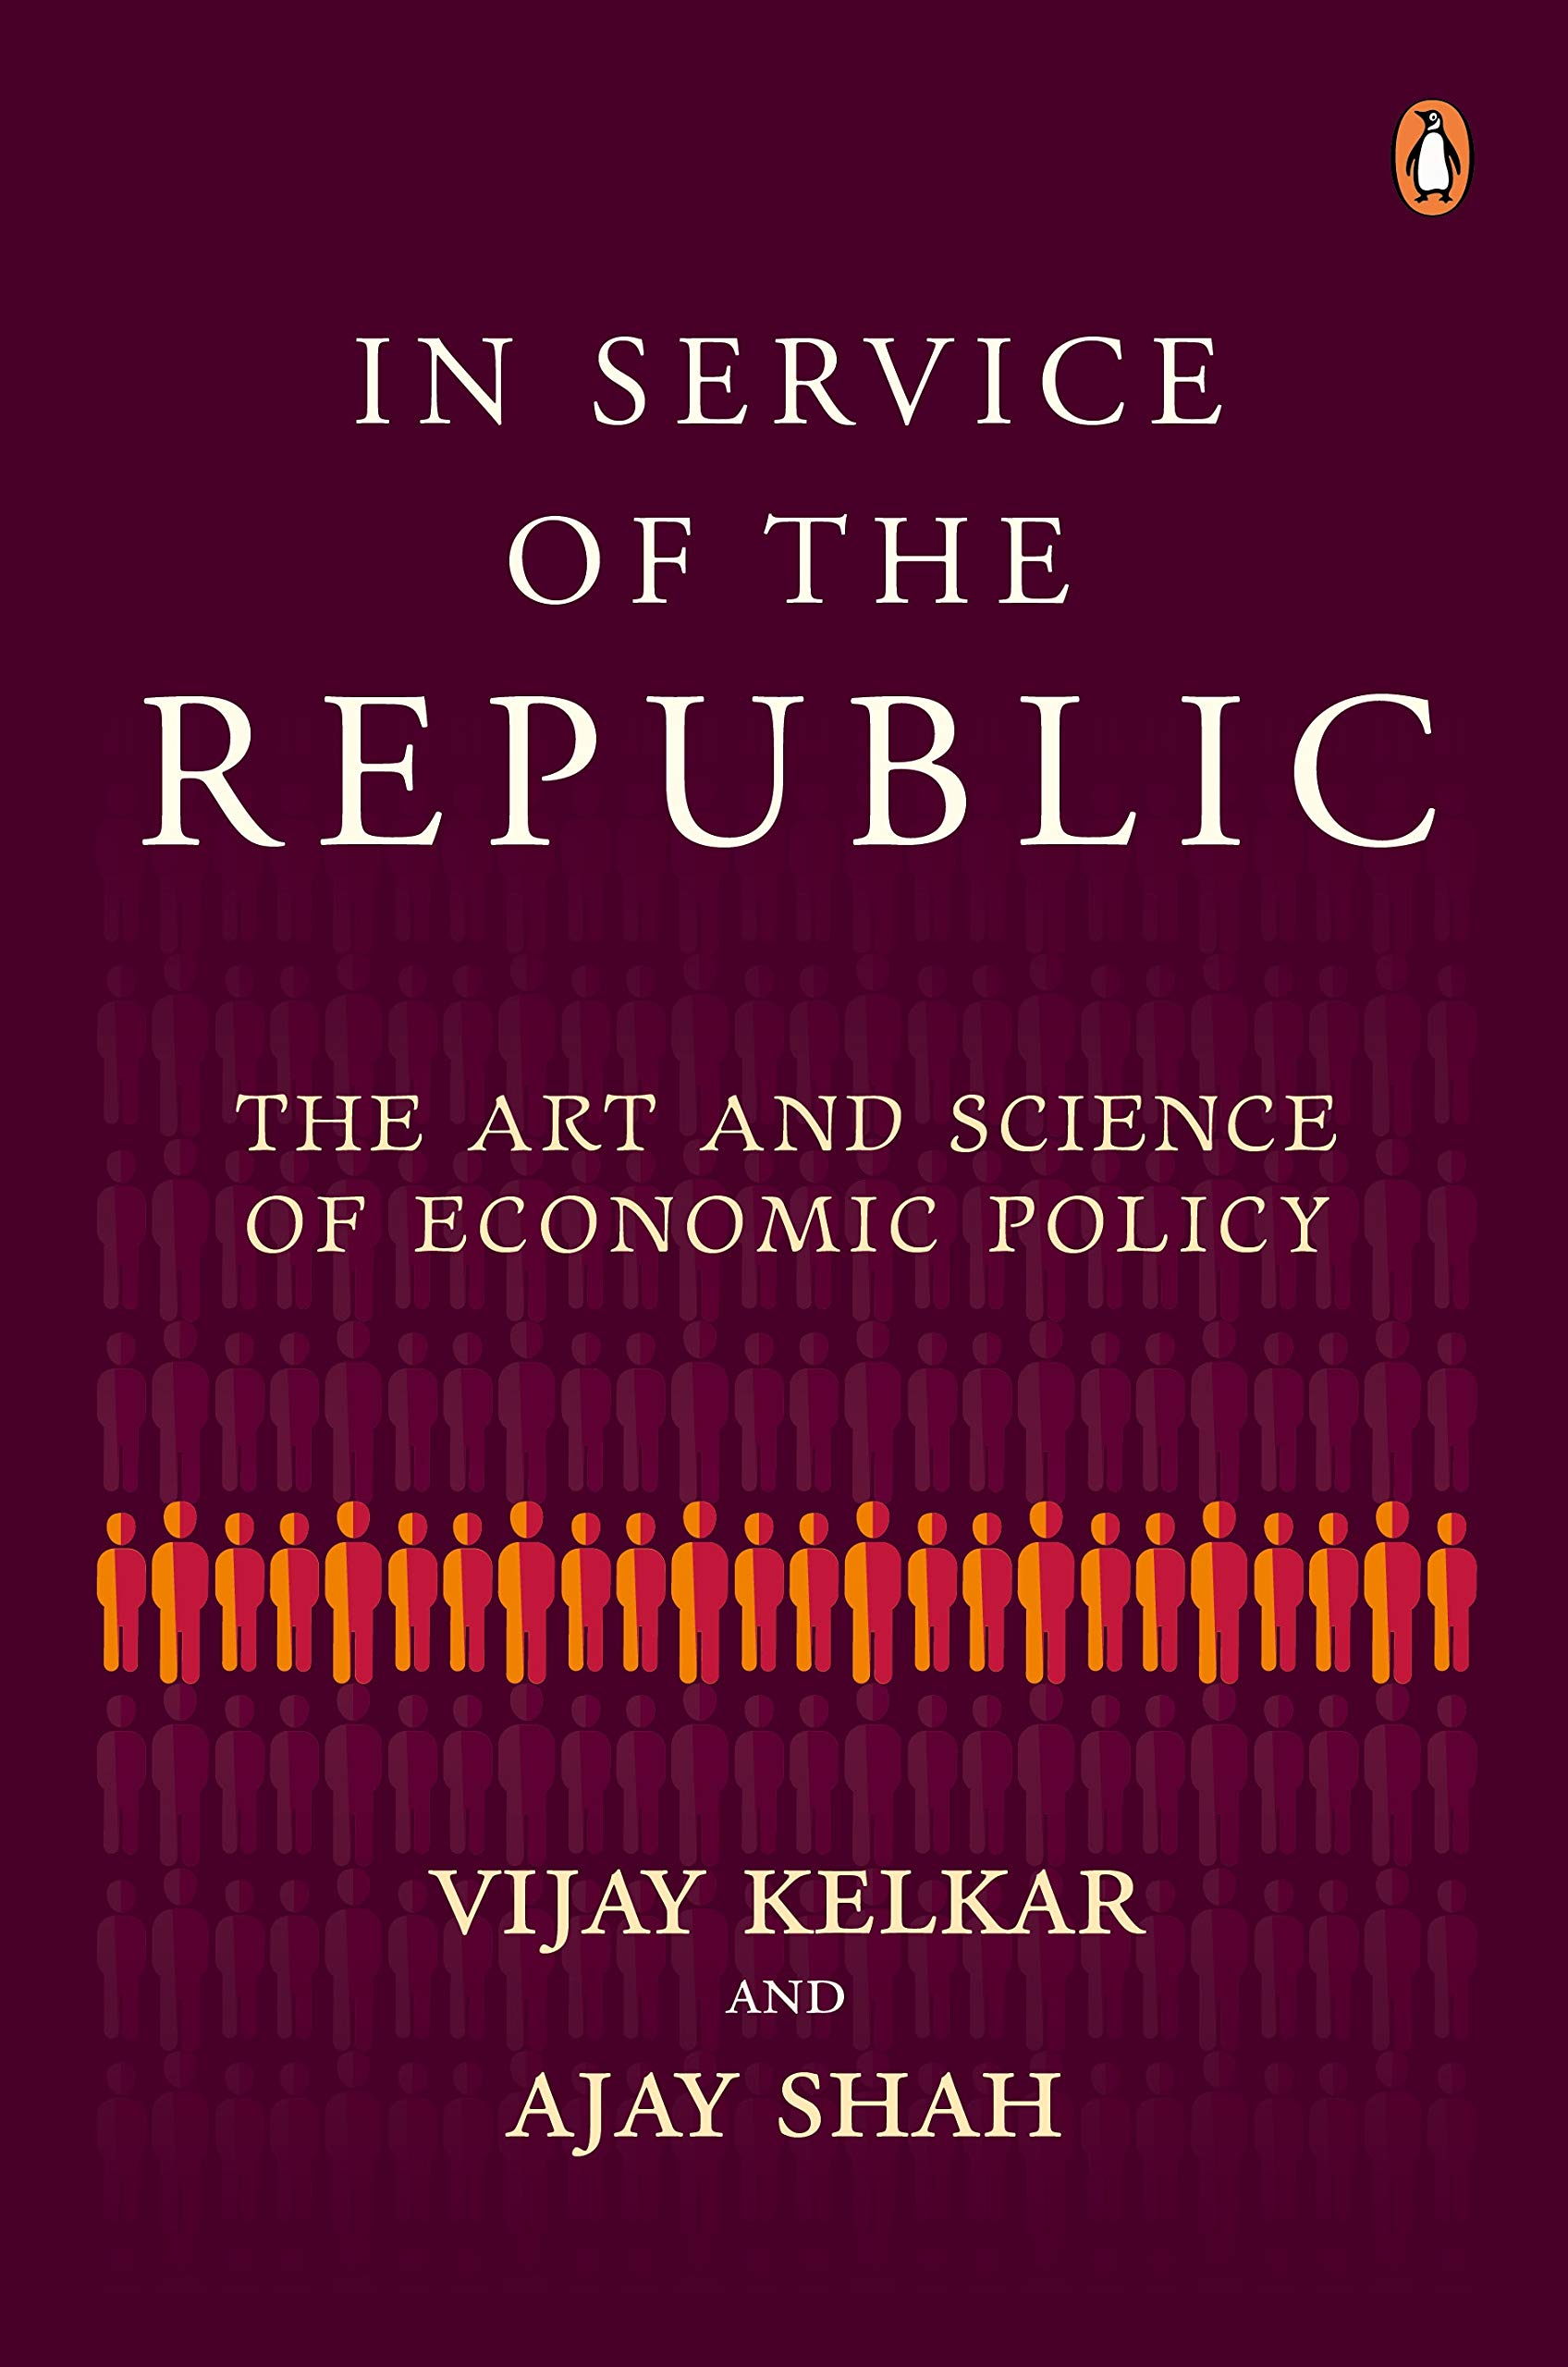 Image result for In service of the republic + Vijay Kelkar + book + review""